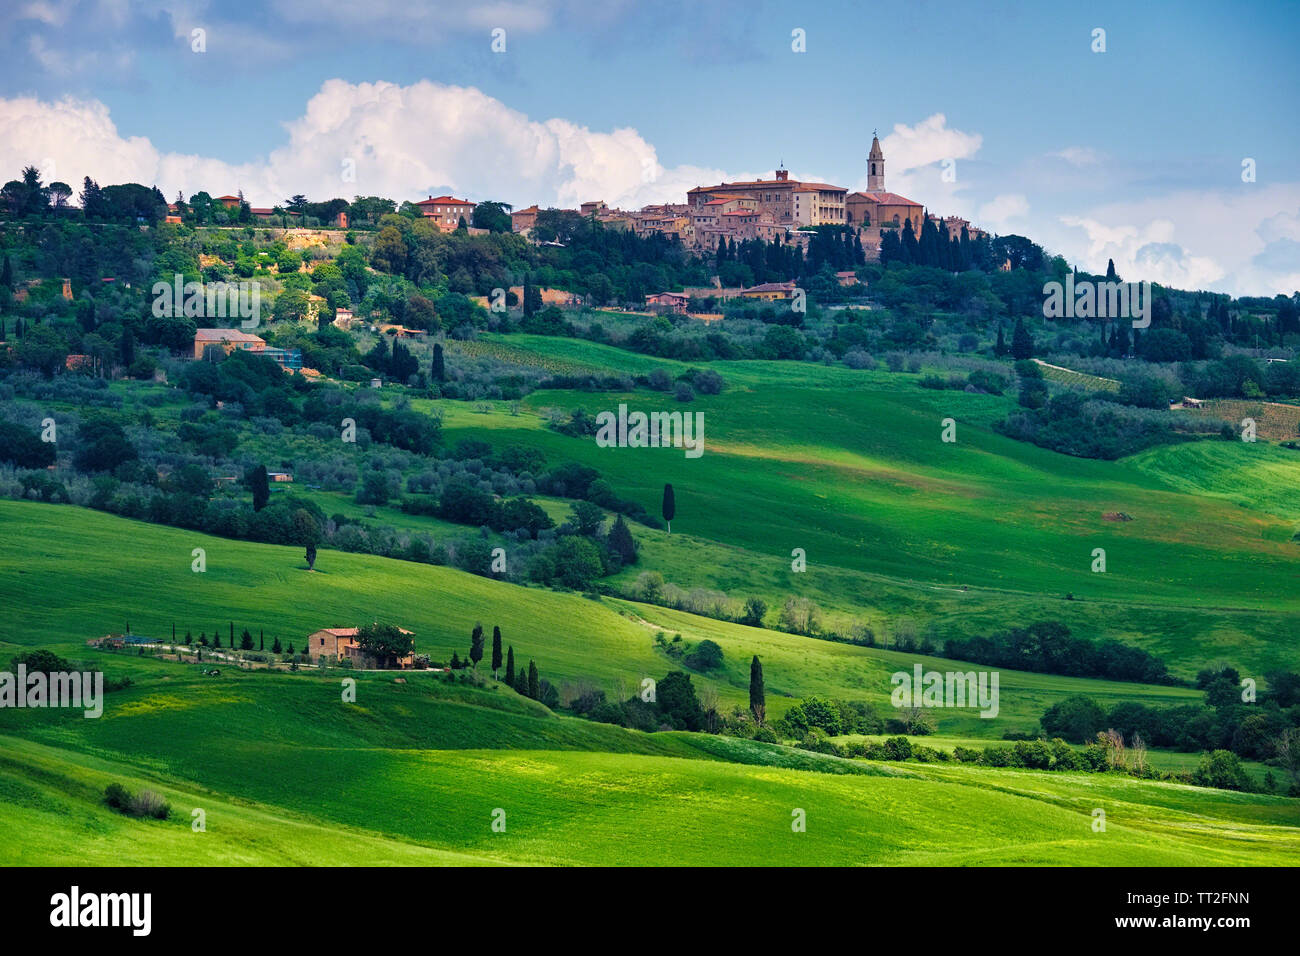 Low Angle View of Pienza in a Tuscan Countryside, Italy Stock Photo